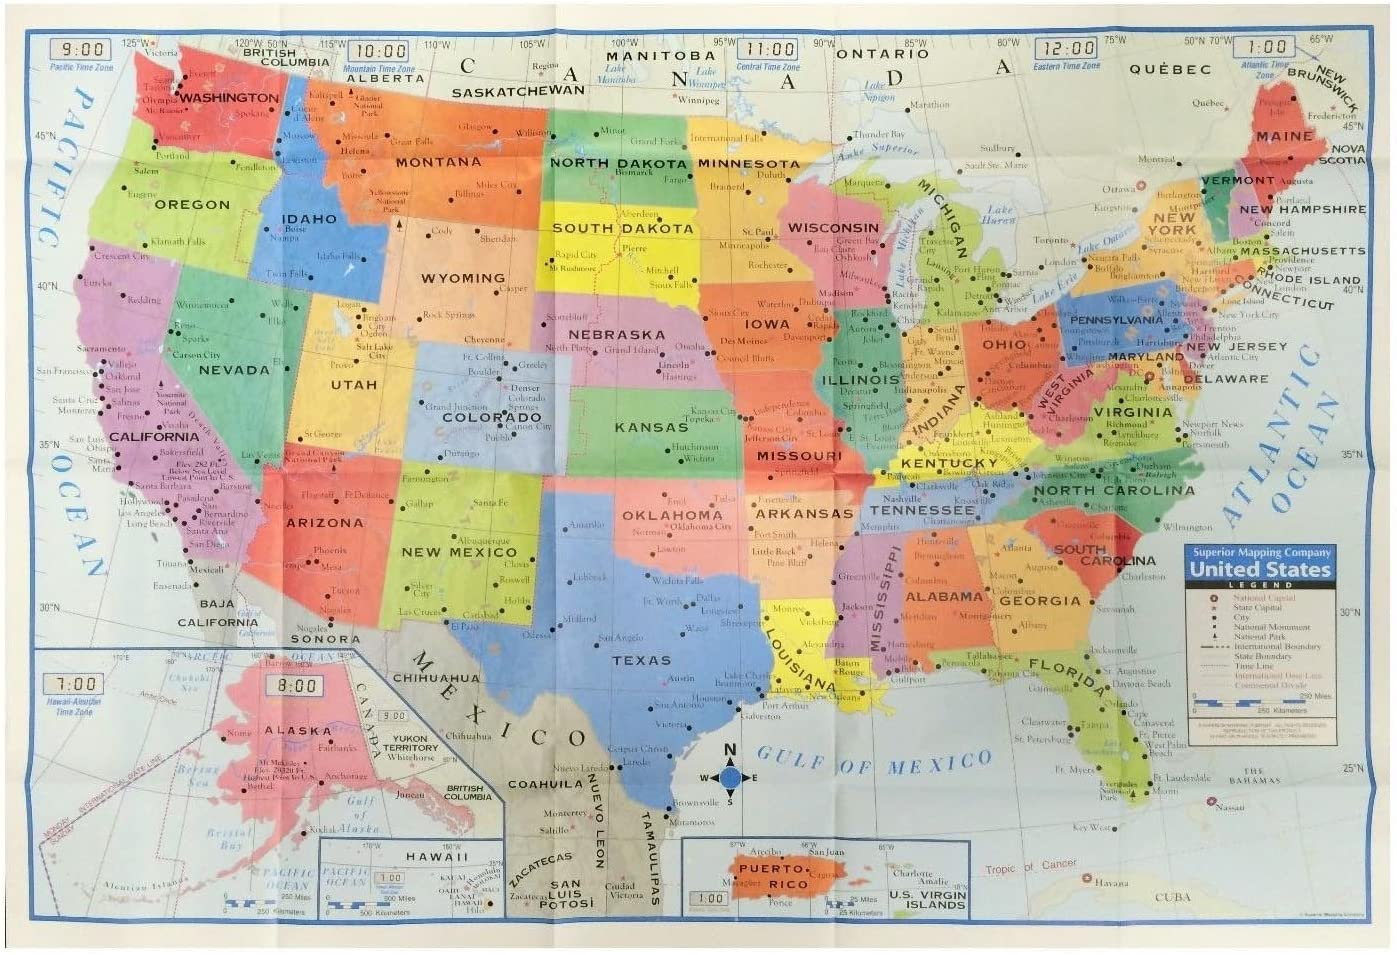 map of united states poster Amazon.com: Kappa HJ84345 United States Wall Map USA Poster, Home